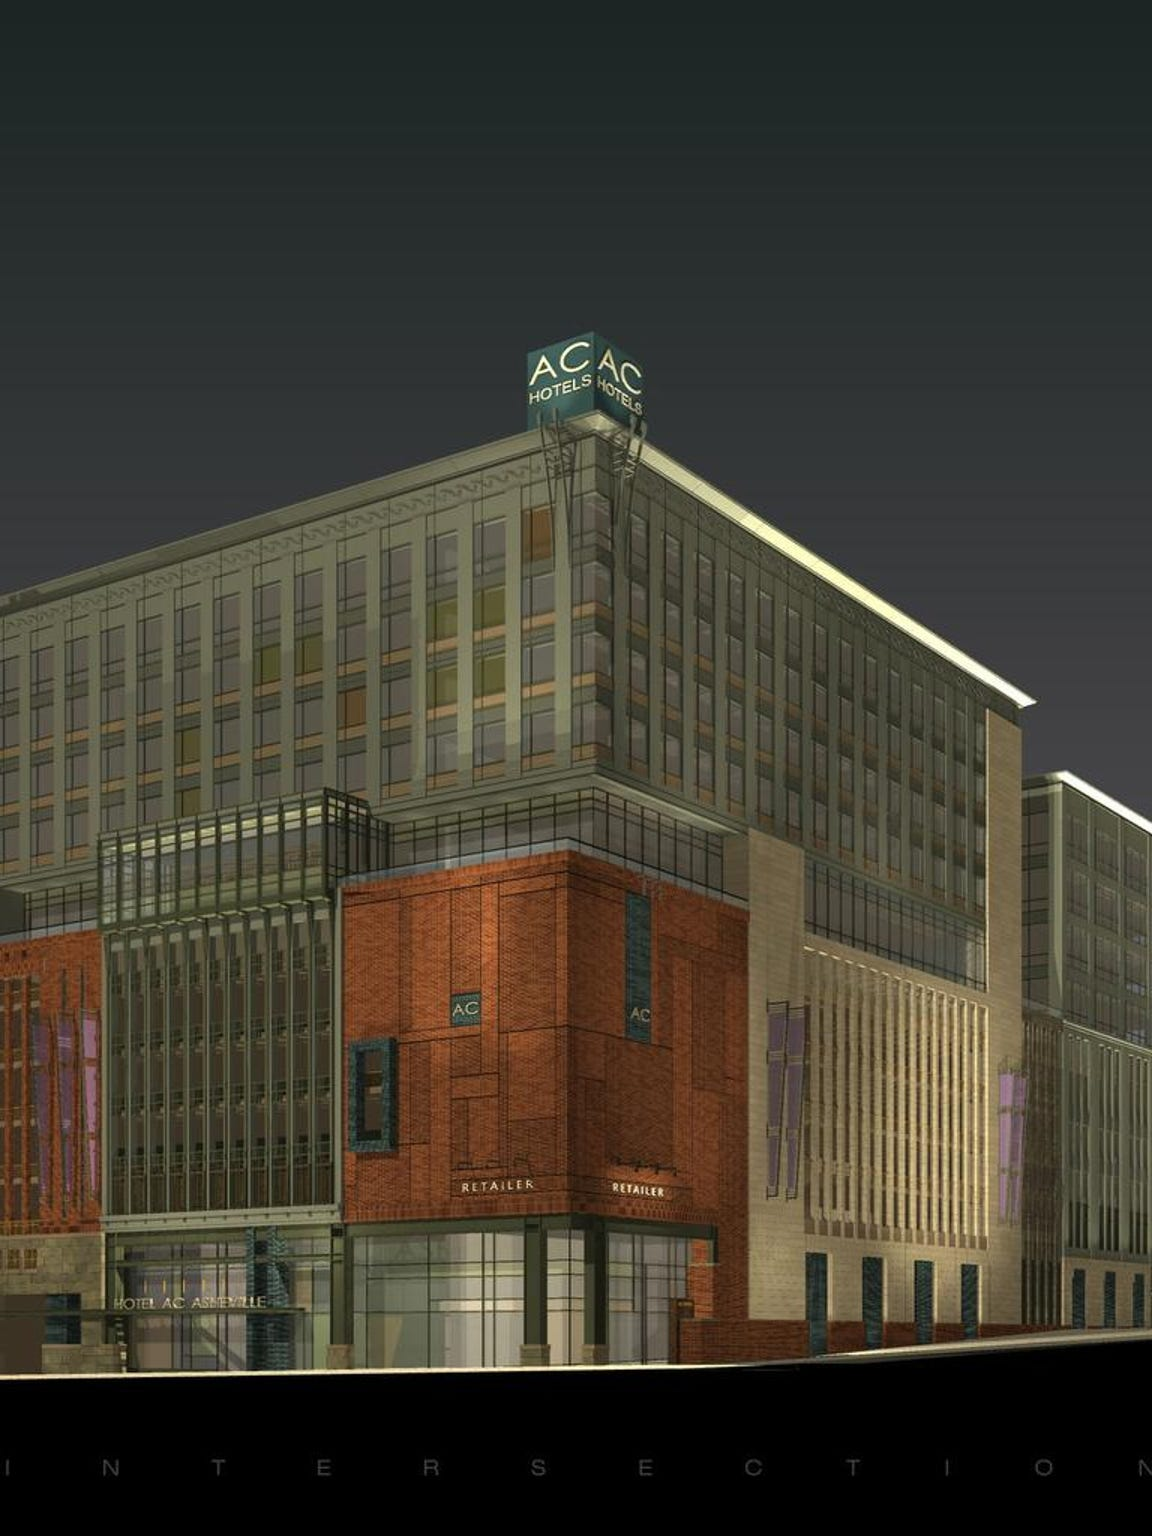 This artist's rendering shows the AC Hotel proposed for the northeastern corner of Broadway and College Street.